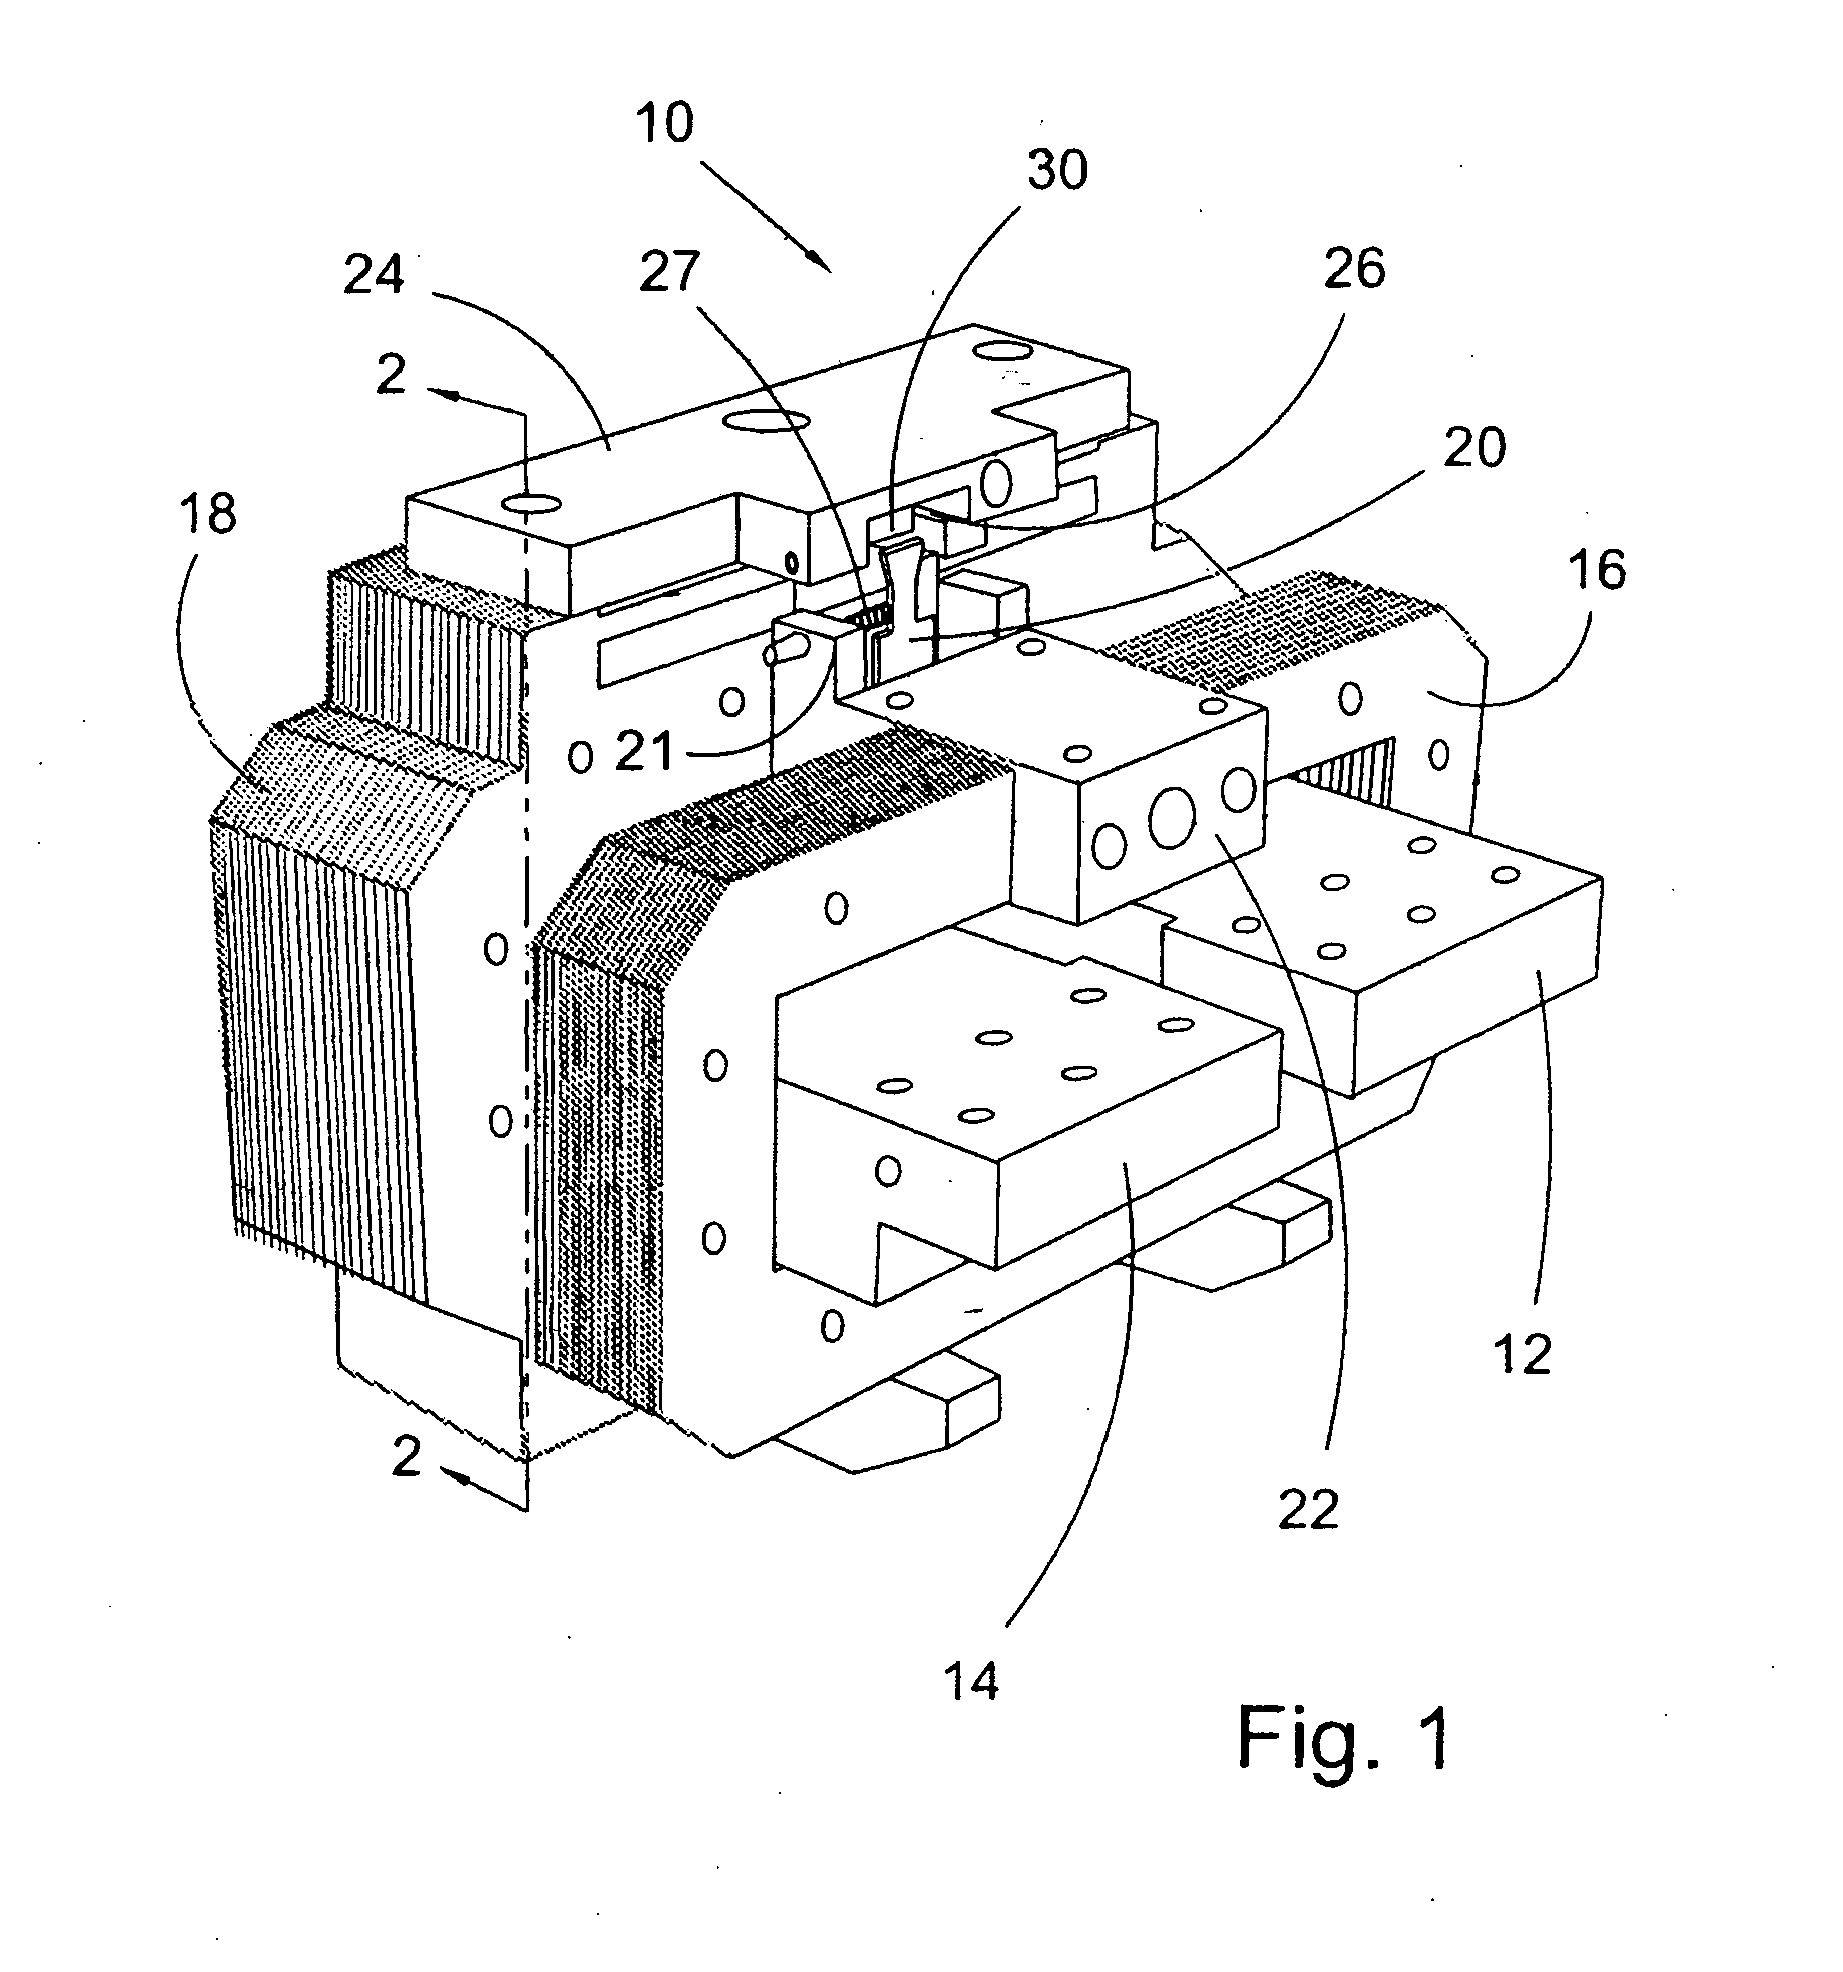 patent ep1936651b1 - current trip unit for circuit breaker